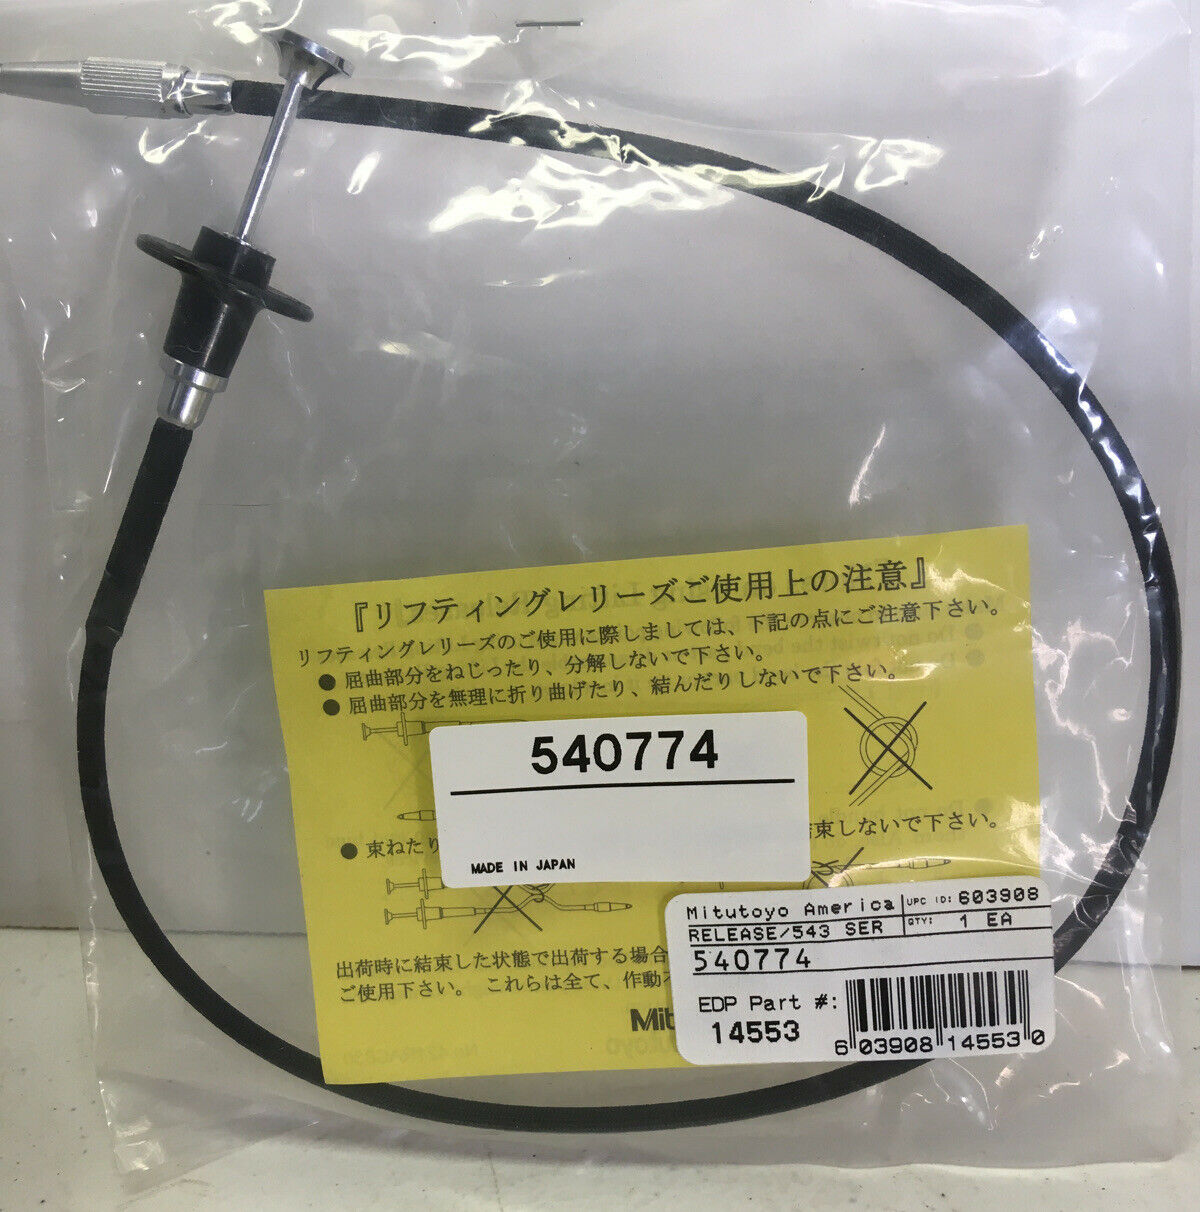 Mitutoyo 540774 Release Cable Spindle Lifting Cable 500mm